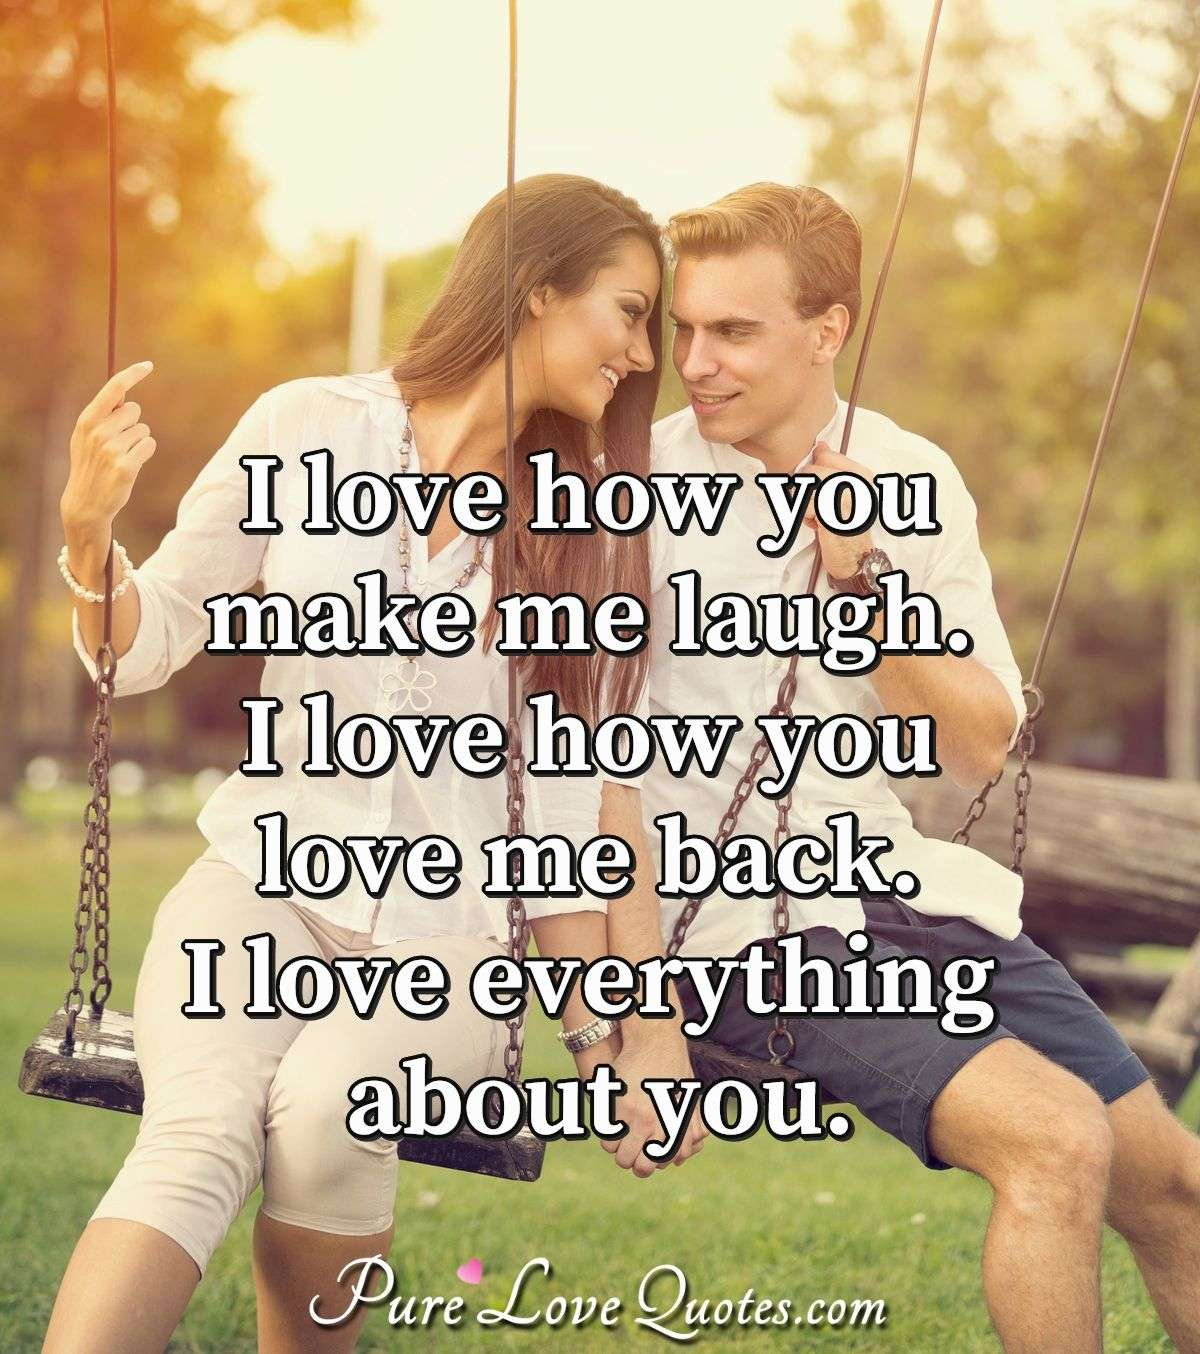 I love how you make me laugh.  I love how you love me back. I love everything about you. - PureLoveQuotes.com